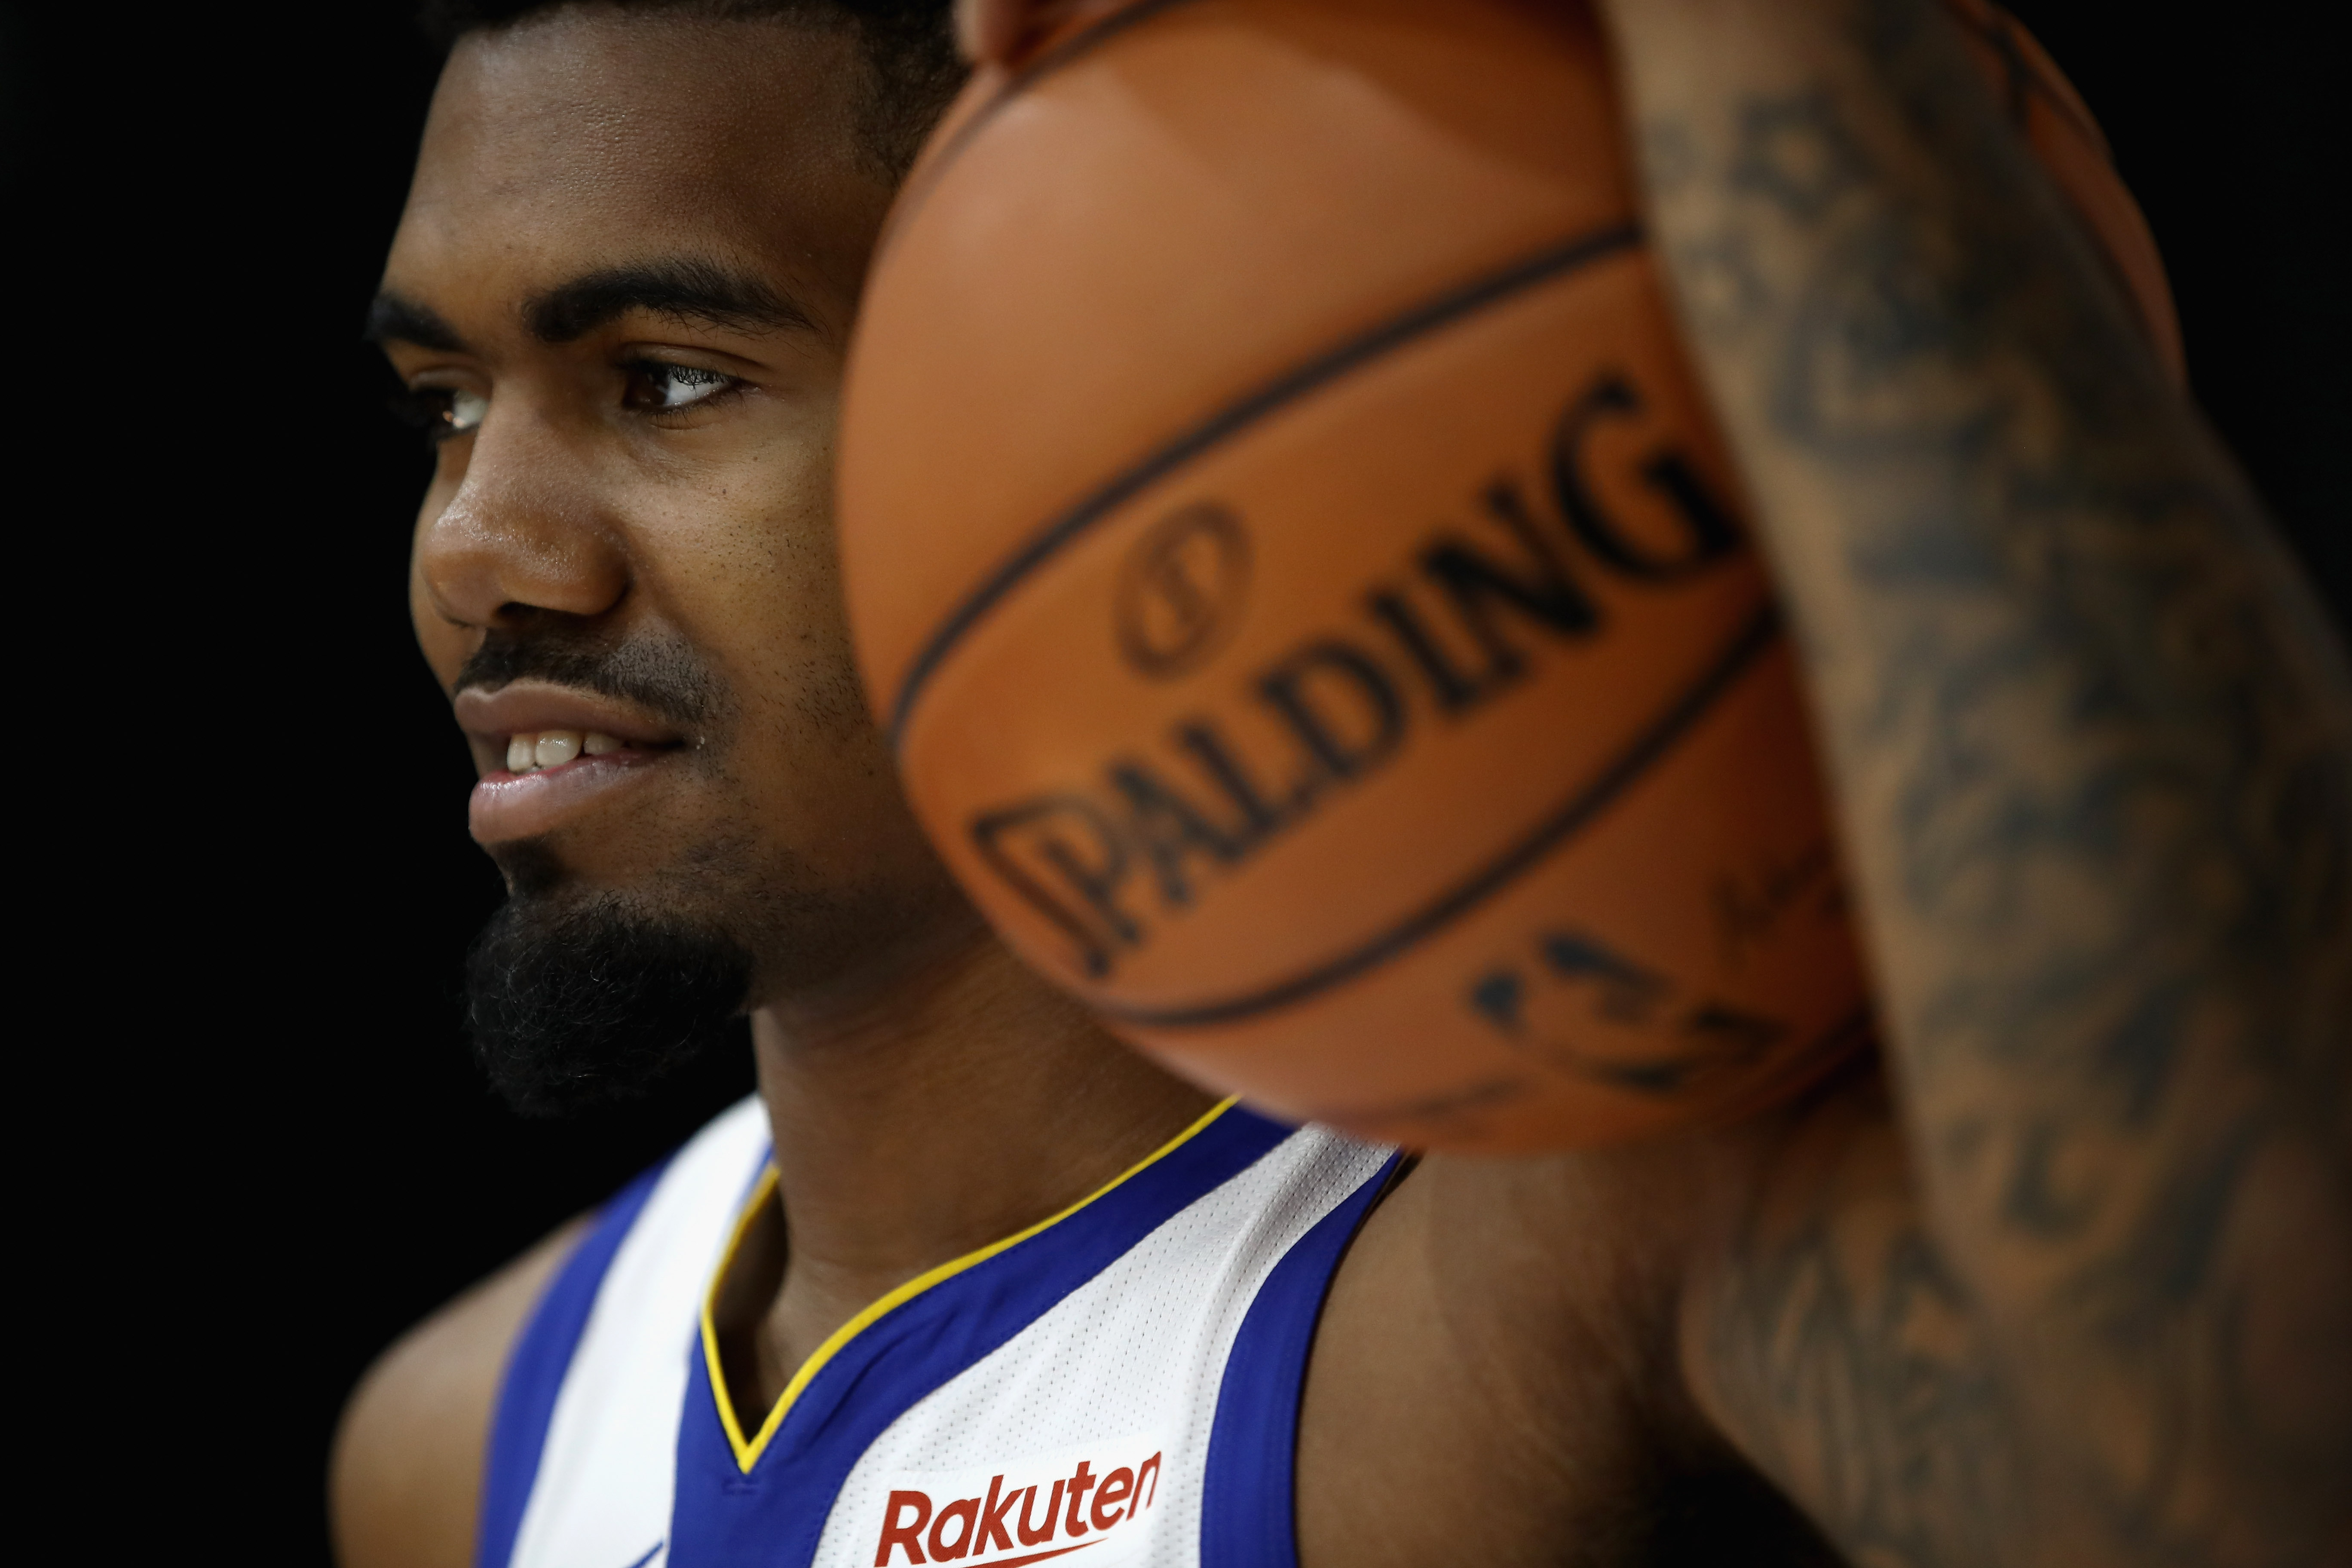 OAKLAND, CA - SEPTEMBER 24: Jacob Evans III #10 of the Golden State Warriors poses for a picture during the Golden State Warriors media day on September 24, 2018 in Oakland, California.